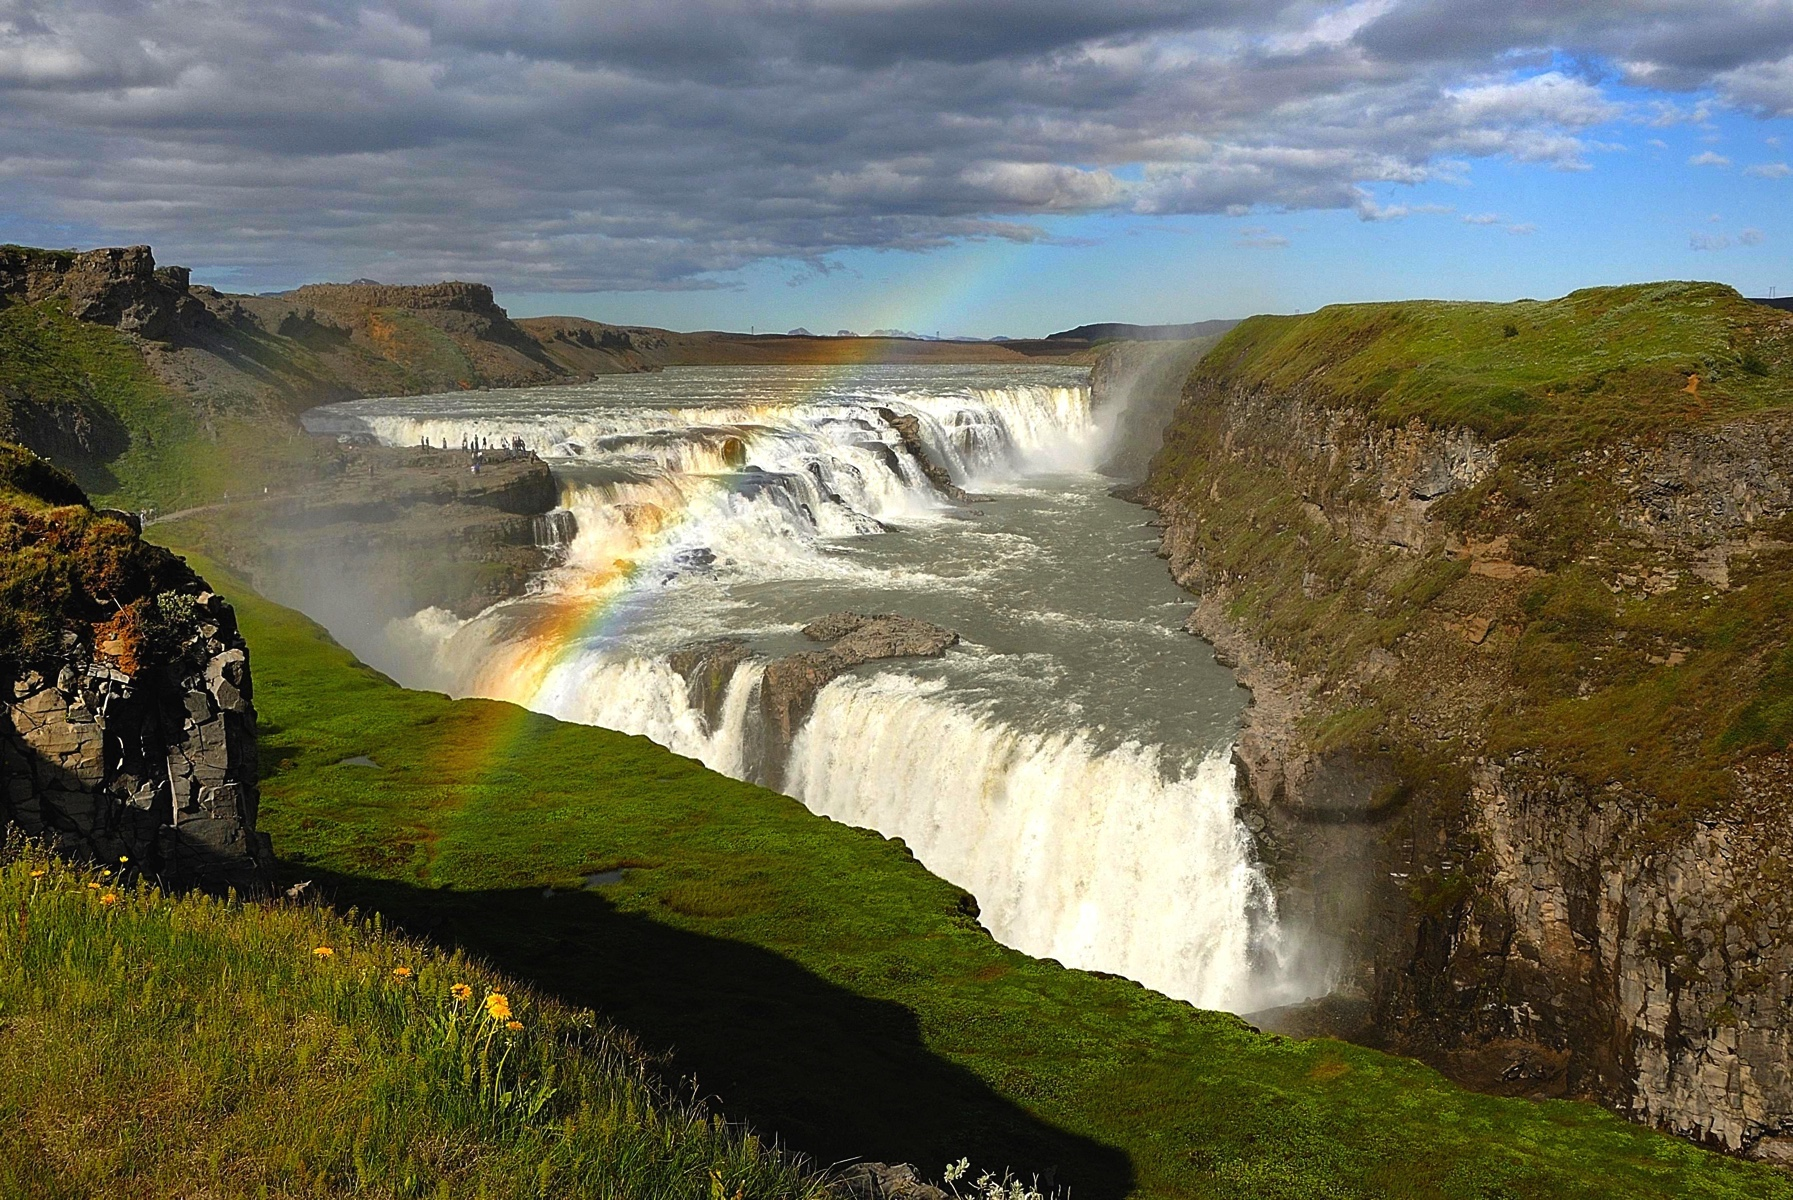 The most photographed waterfall in Iceland, Gullfoss